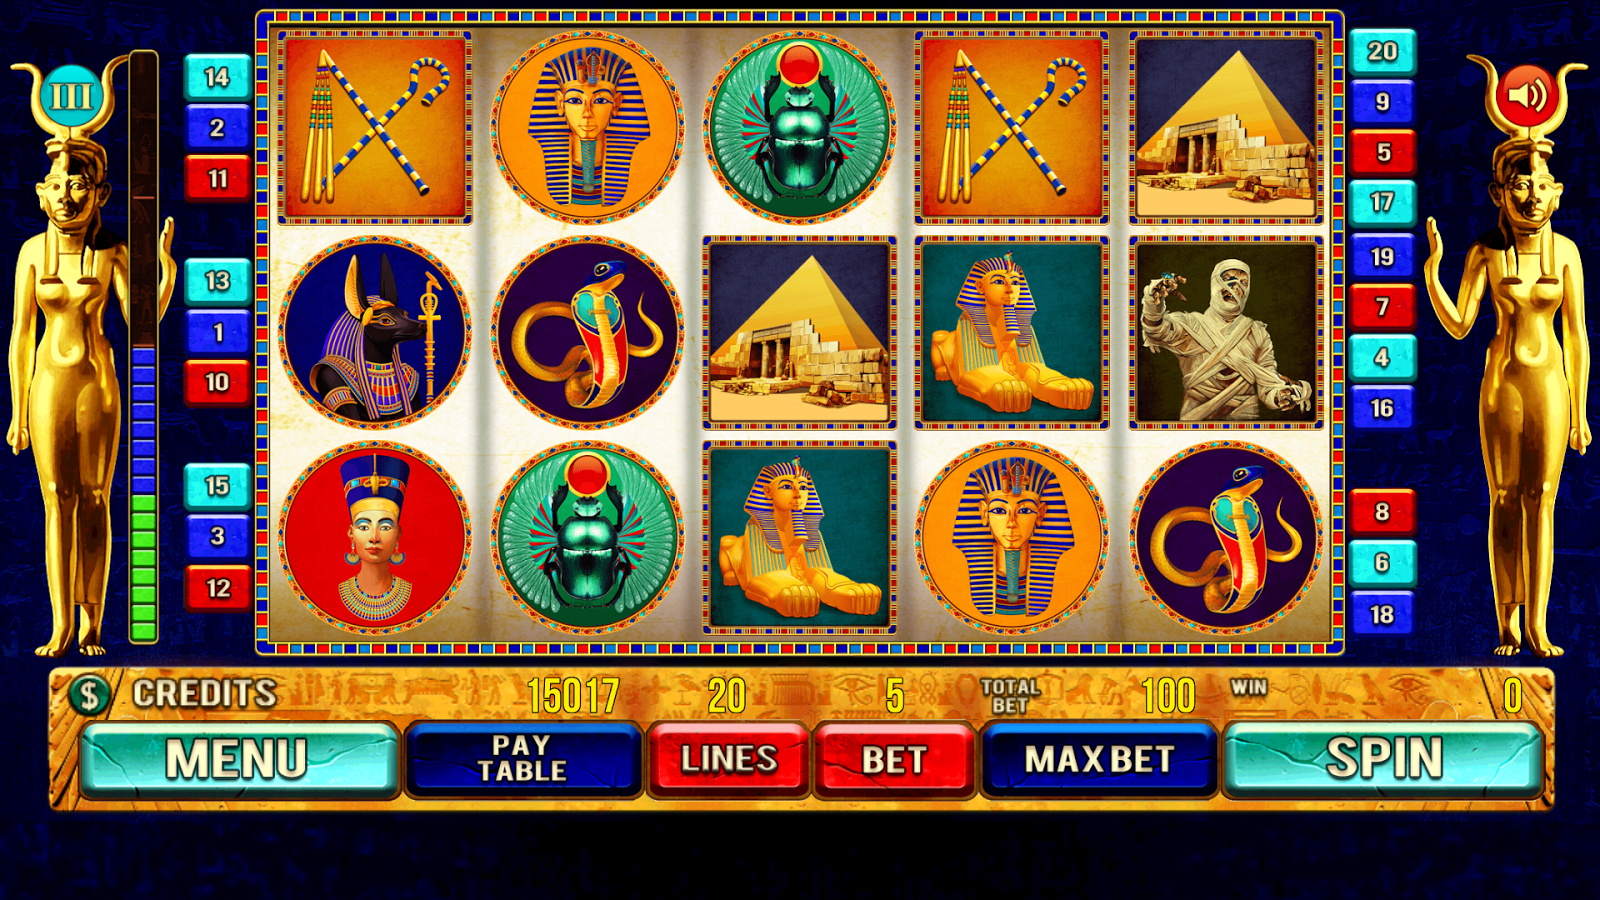 Ulysses Slot Machine - Play for Free in Your Web Browser